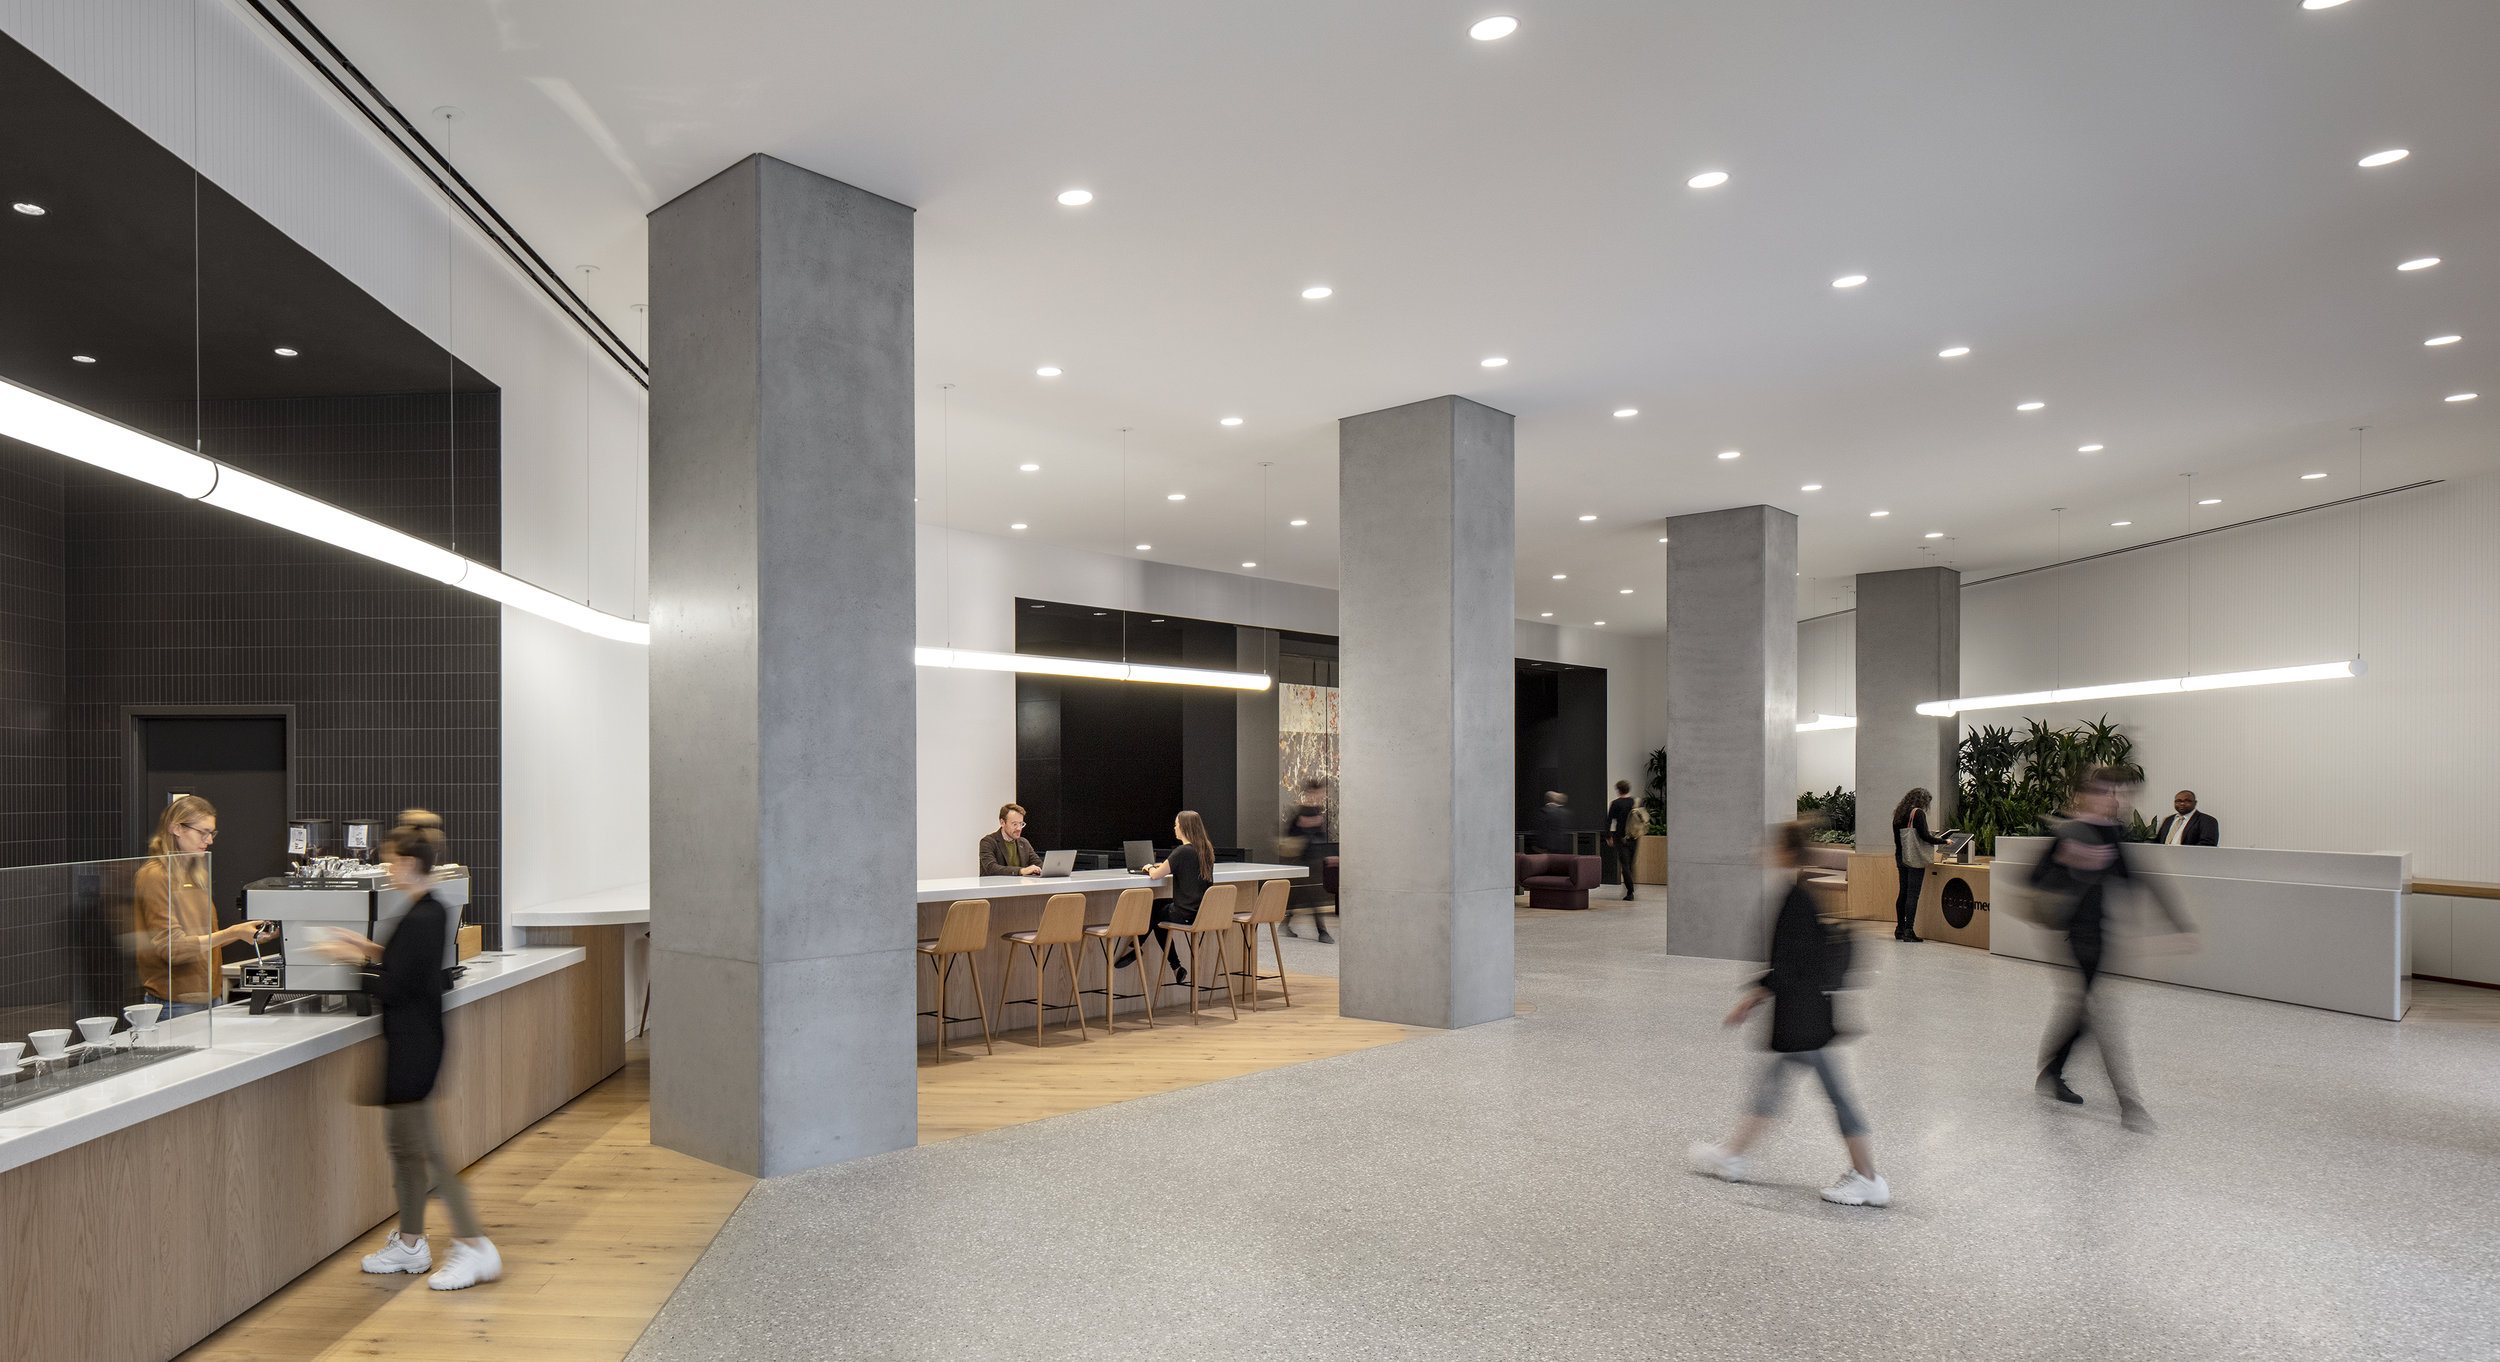 Tenants and visitors have their choice of activity at the new lobby for 75 Varick Street.